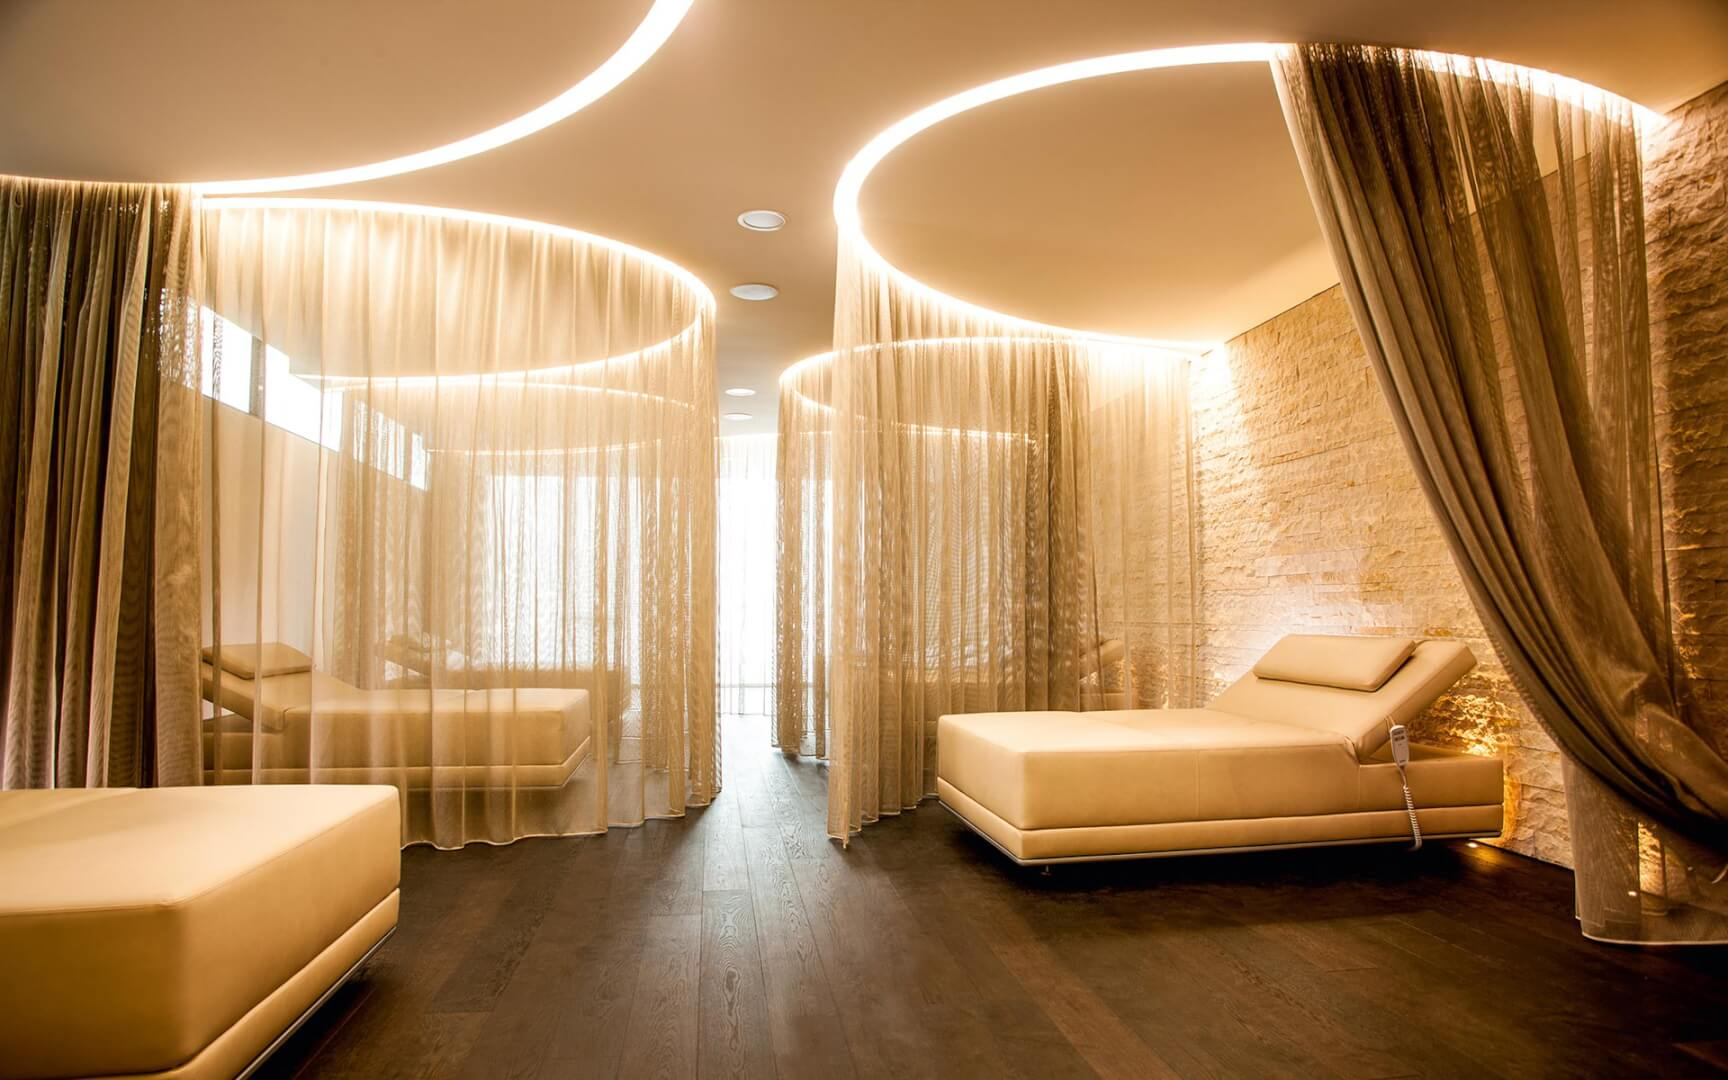 Spa relaxation areas by KLAFS at Guncast